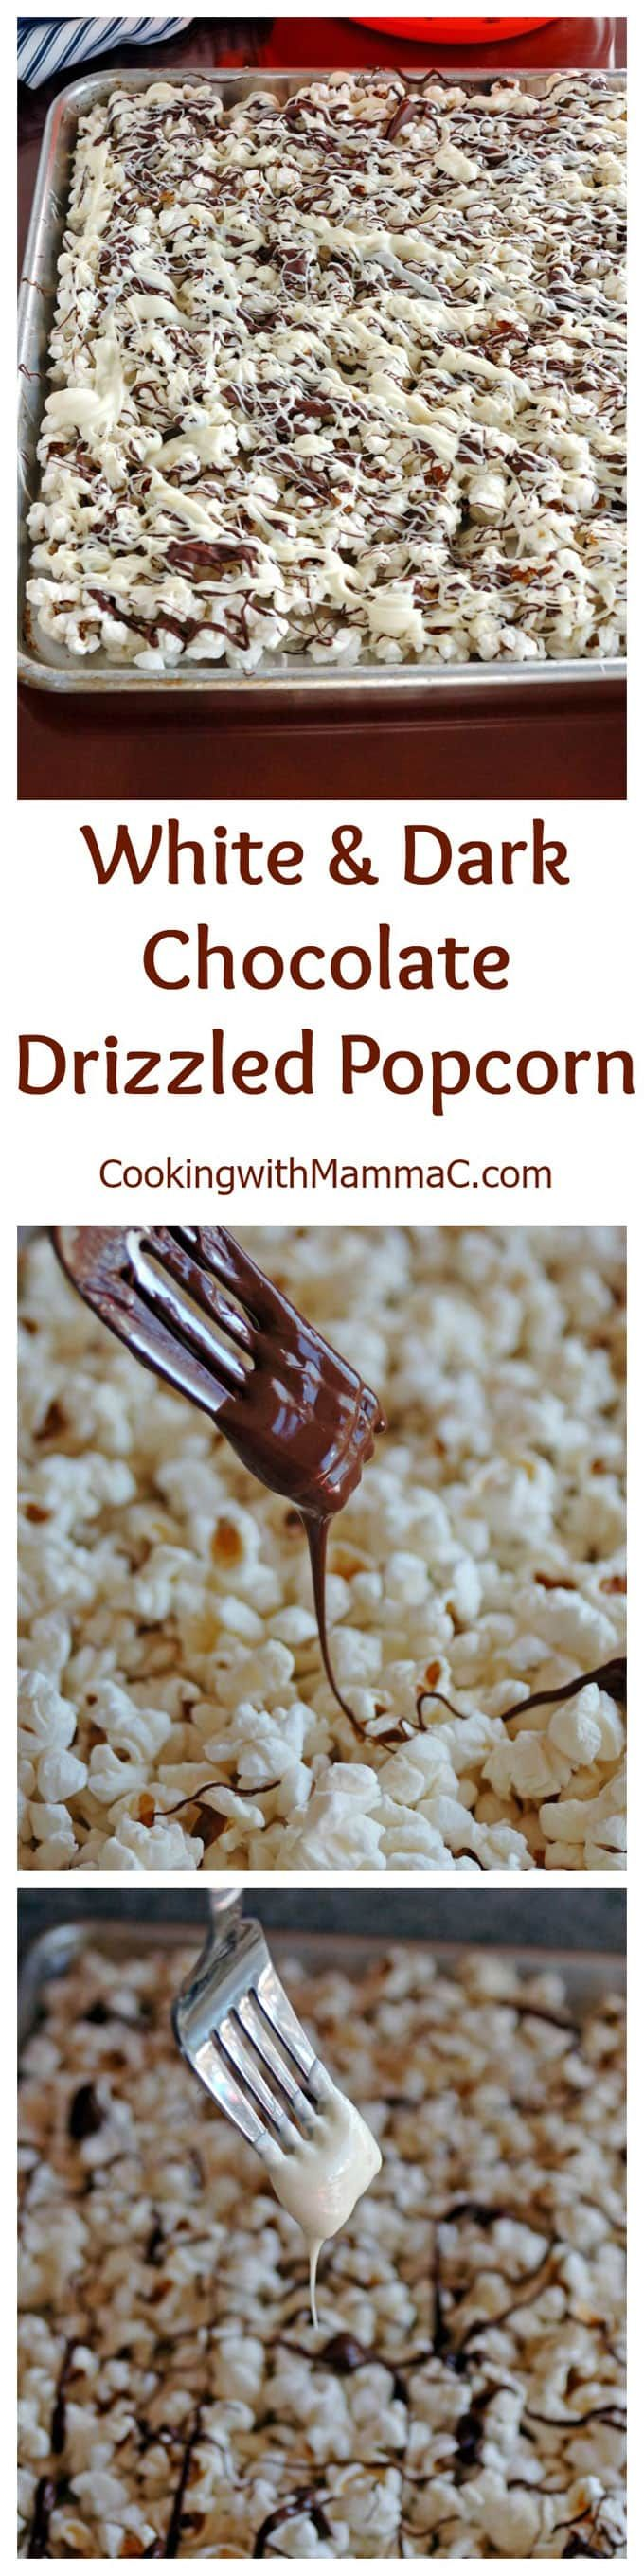 White and Dark Chocolate Drizzled Popcorn - irresistible and addictive!